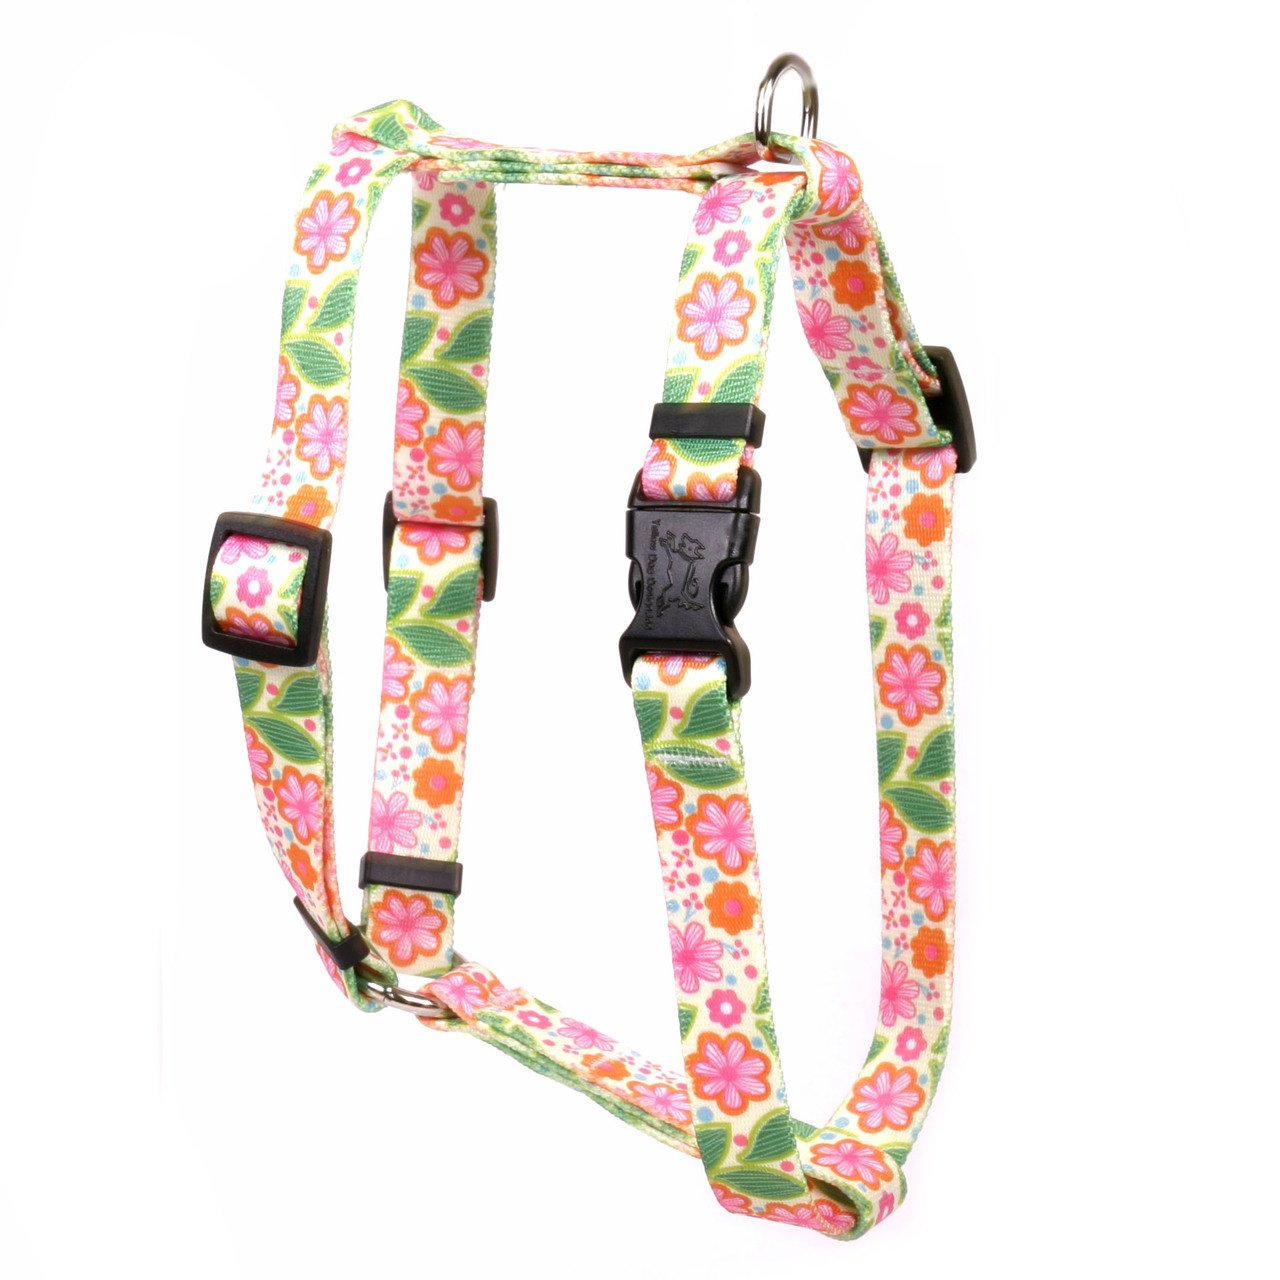 Yellow Dog Design Flower Patch Roman Style Dog Harness Fits Chest Circumference of 8 to 14'', X-Small/3/8